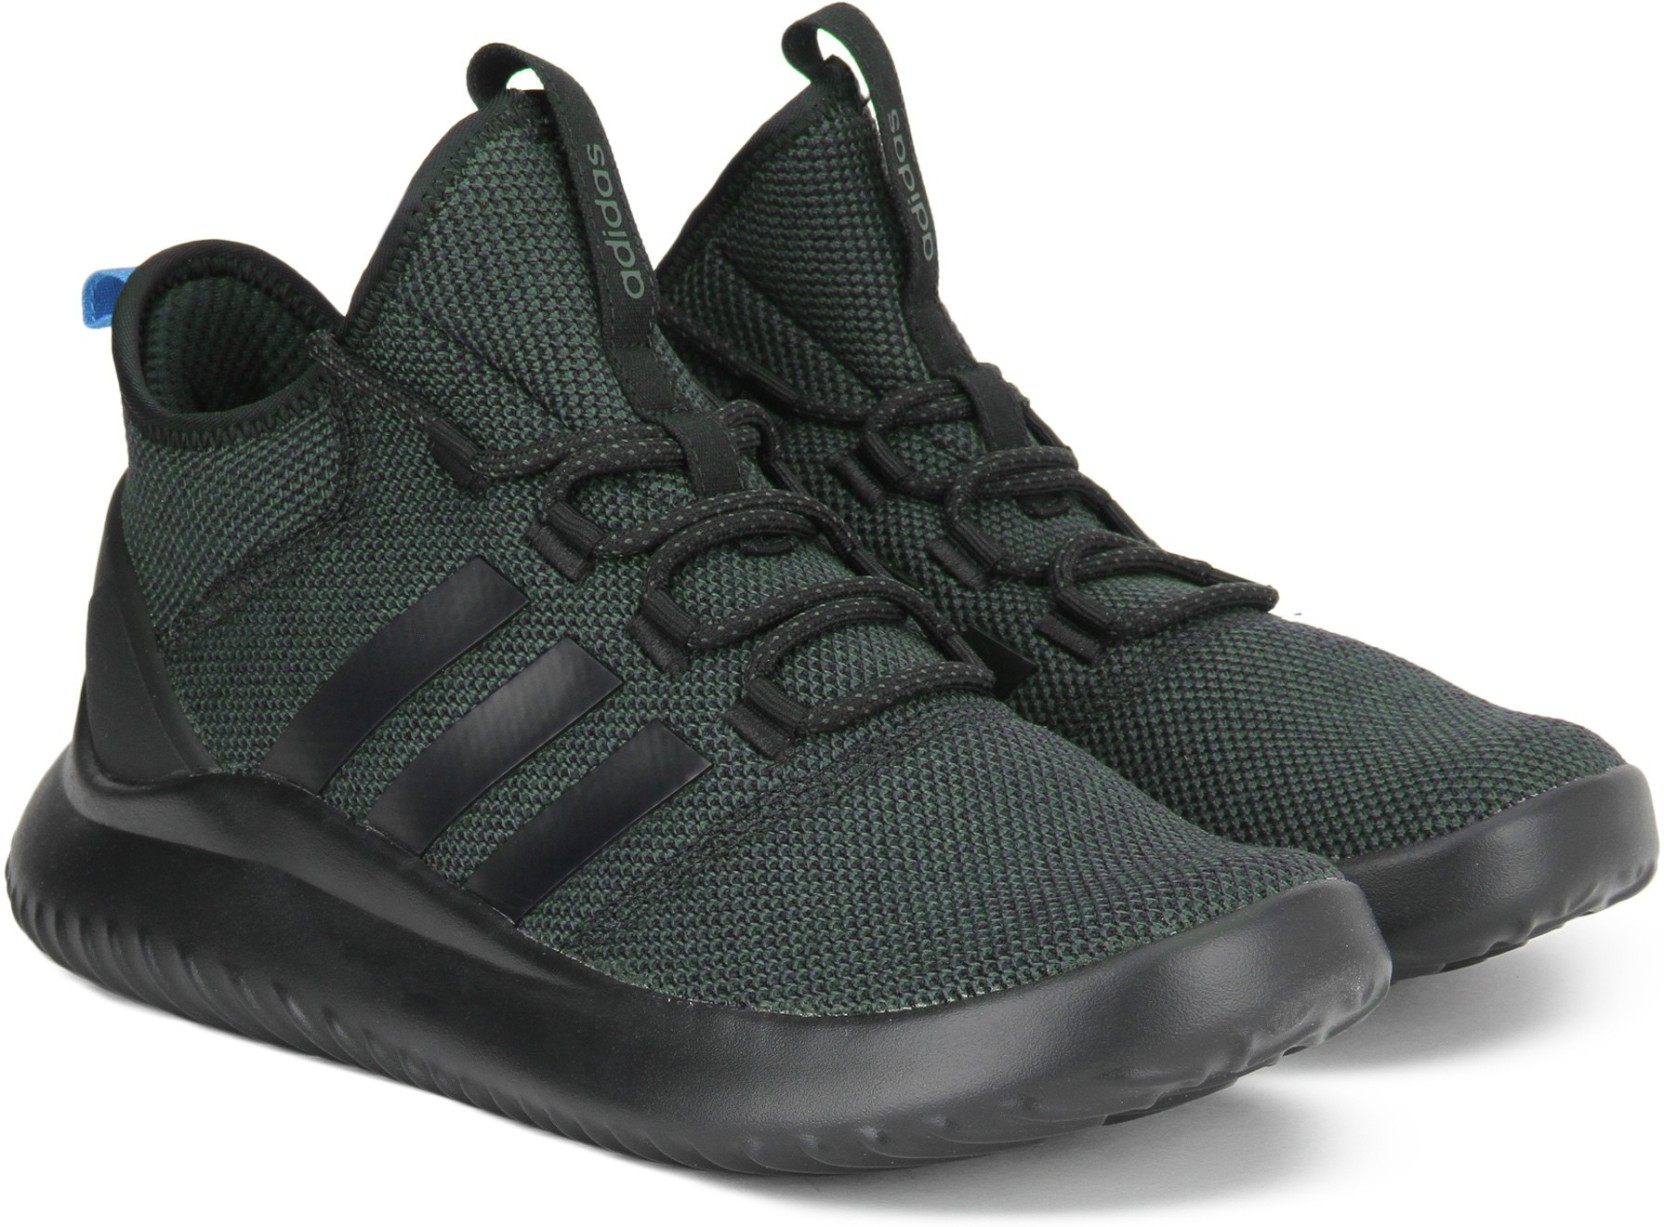 ef9a4c197d63 ADIDAS ULTIMATE BBALL Basketball Shoes For Men - Buy CARBON CBLACK ...